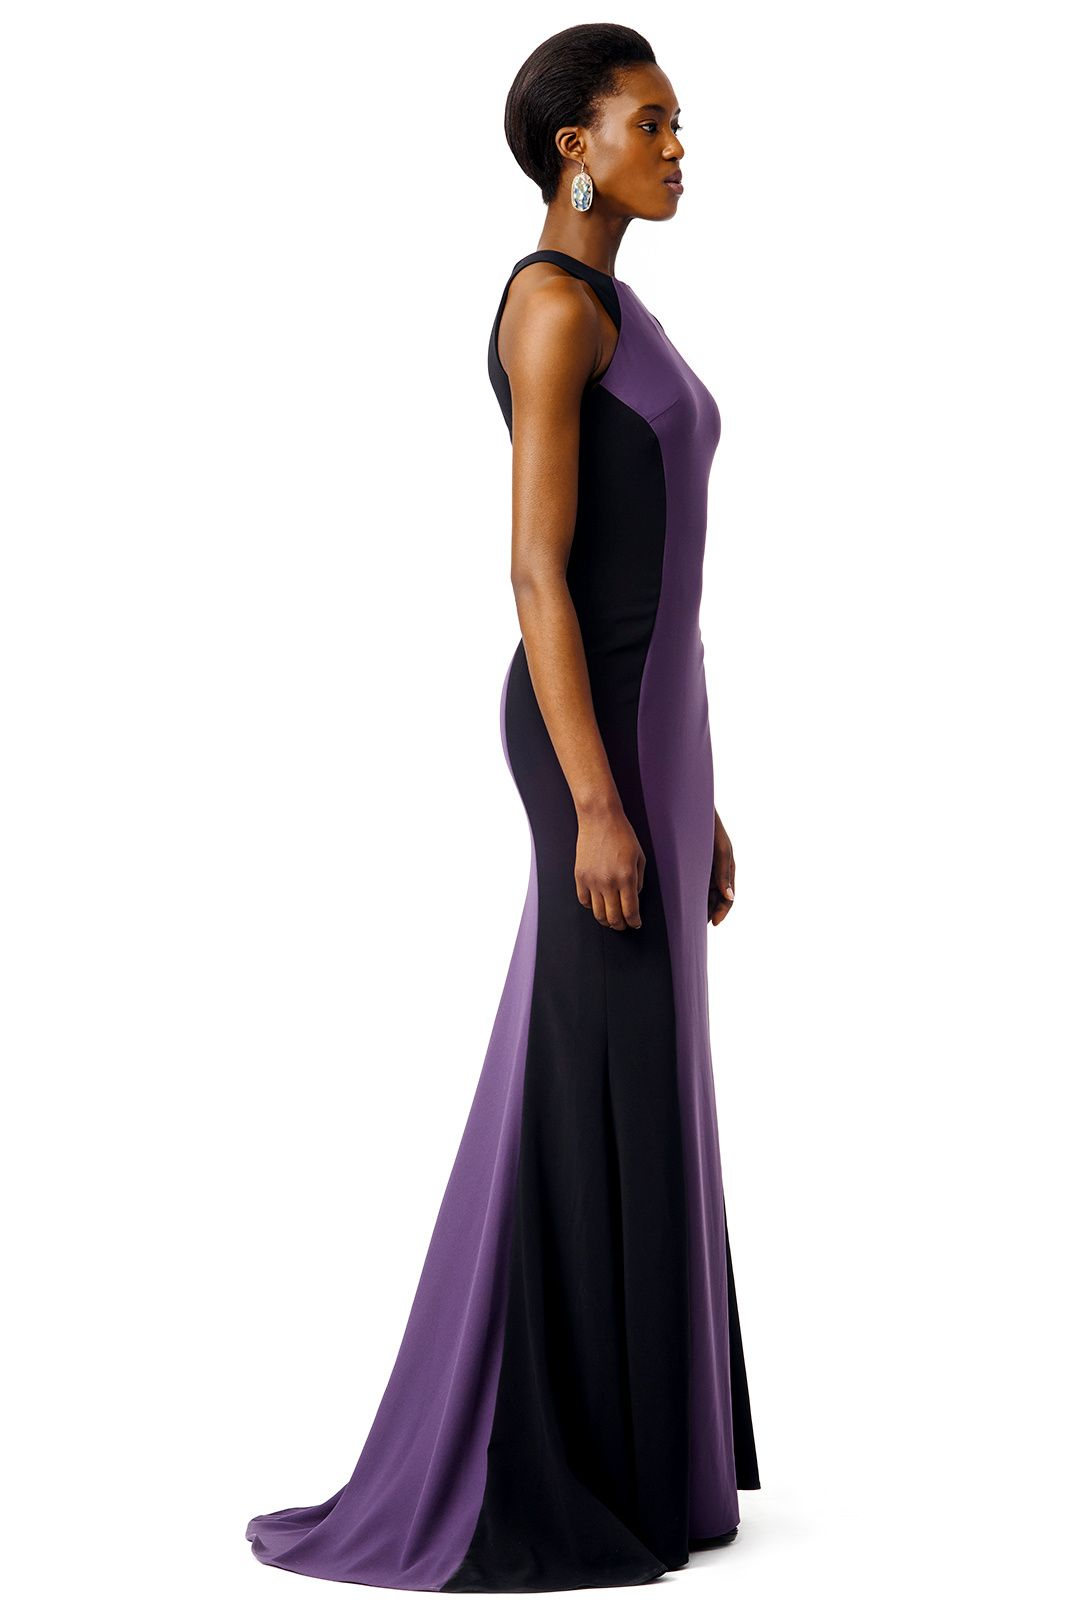 Black Night Gown by nha khanh for $150 | Rent The Runway | VMB Gowns ...